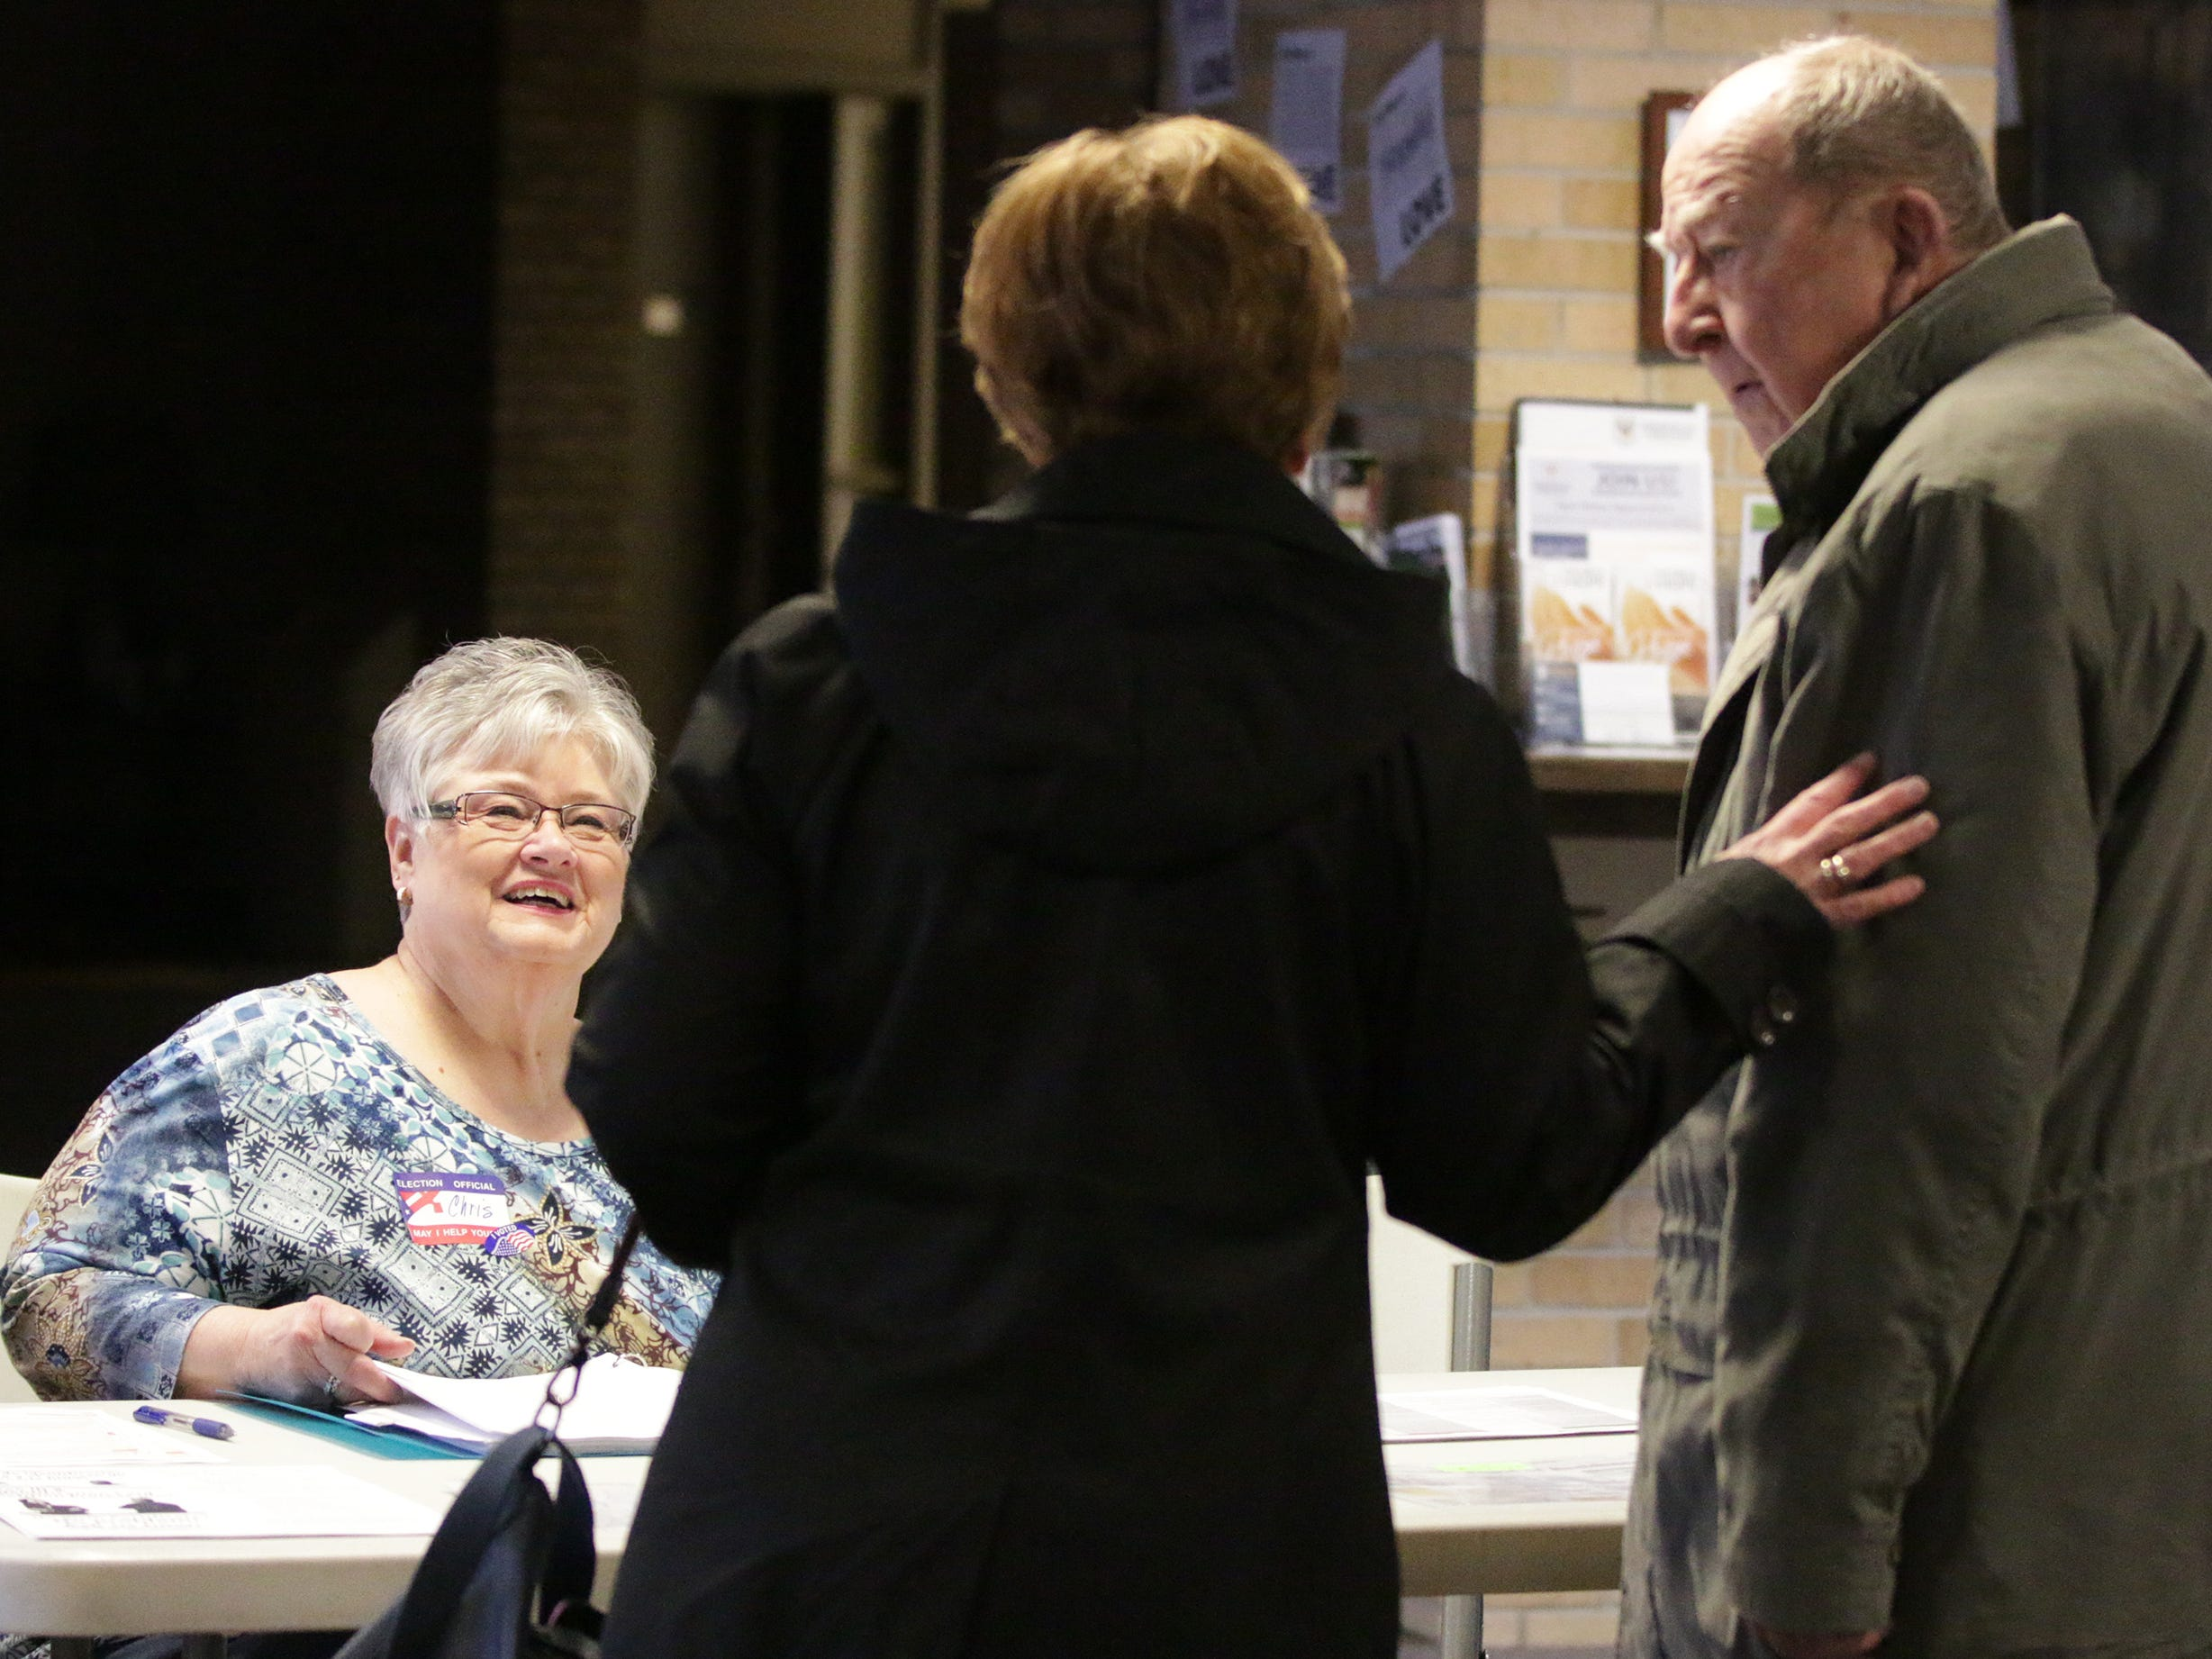 Poll Worker Chris Wieck smiles as she talks to voters following their vote at the Bethany Reformed Poll, Tuesday, April 2, 2019, in Sheboygan, Wis.